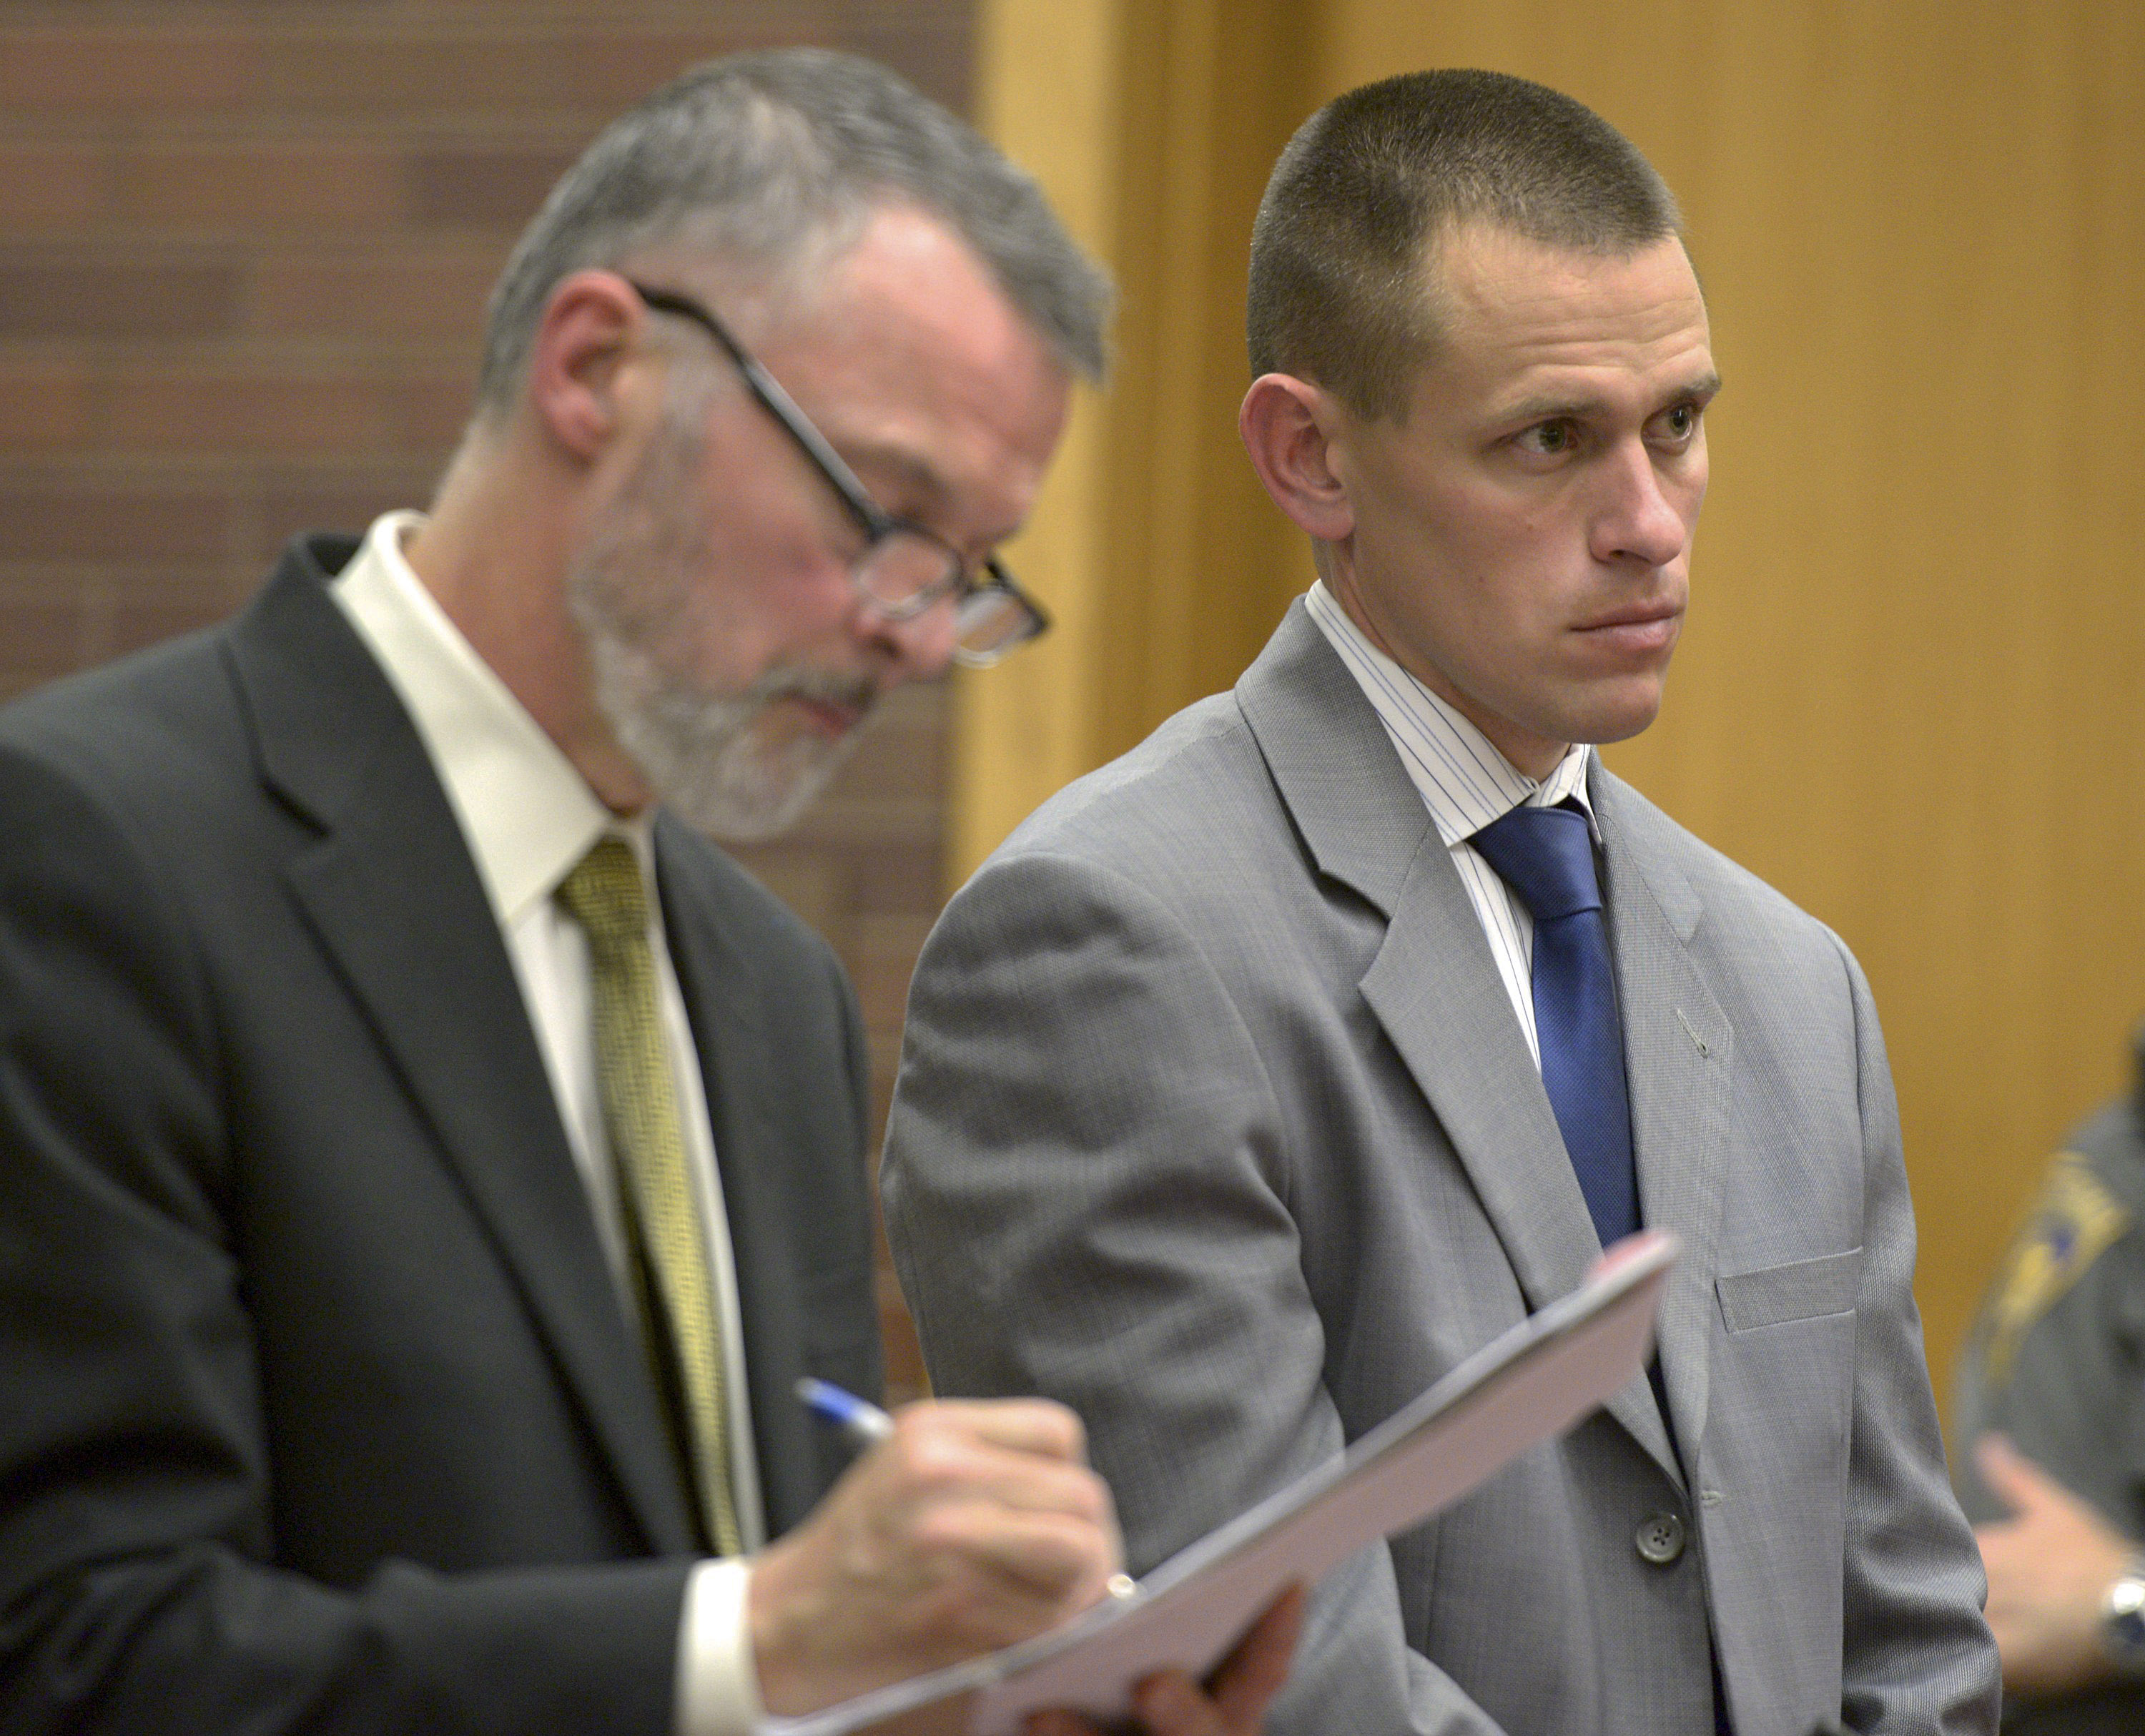 Kyle Seitz, right, of Ridgefield, Conn., stands for arraignment with his attorney John Gulash in Danbury Superior Court in Danbury, Conn., on Nov. 12, 2014